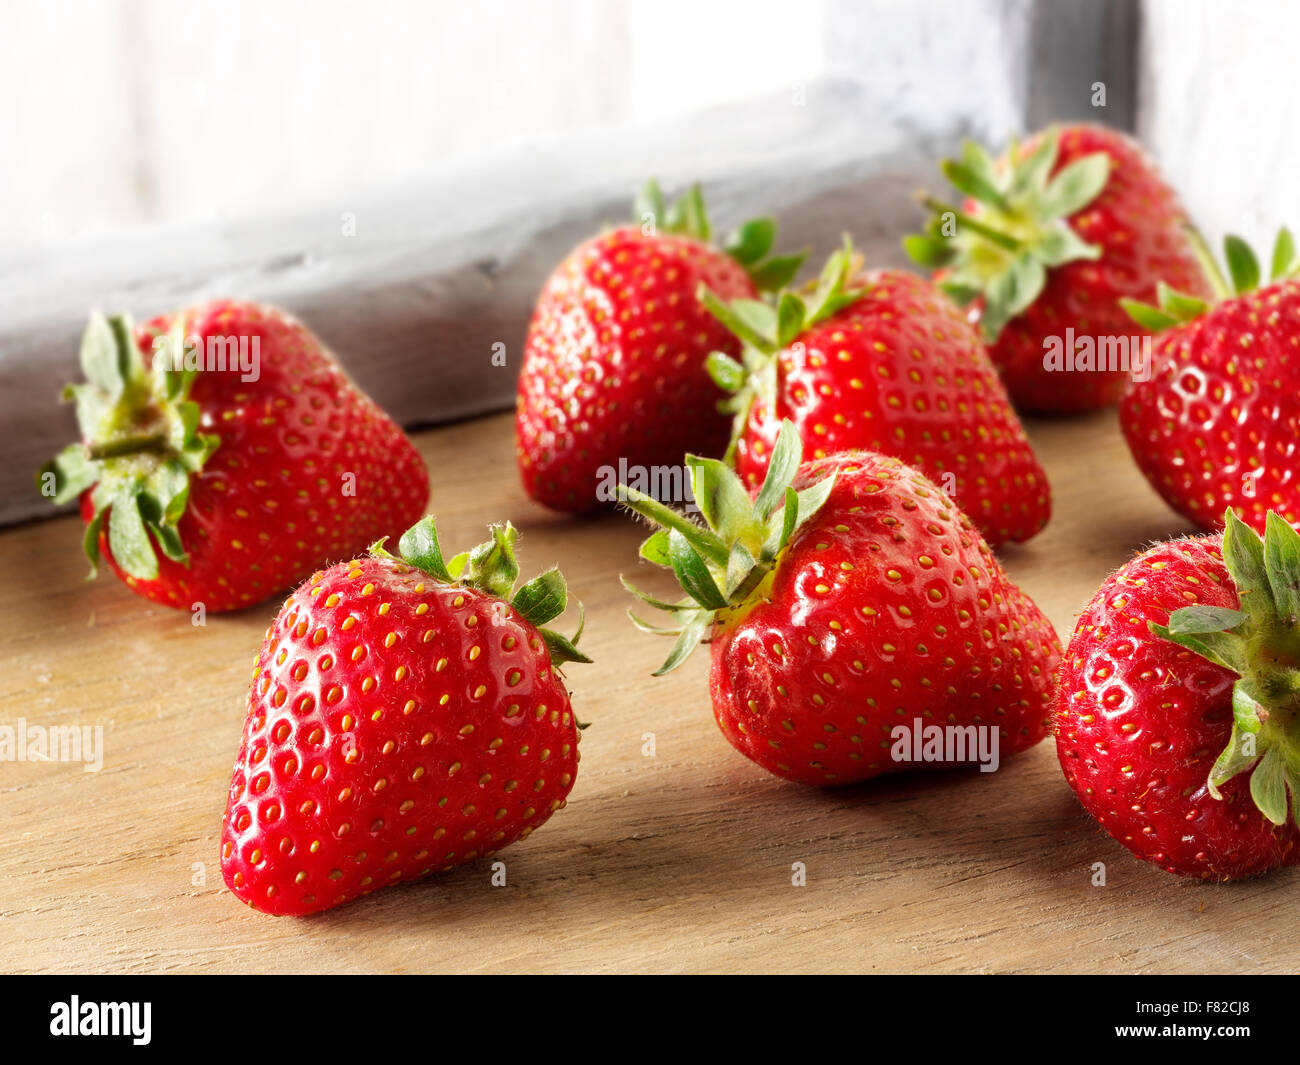 Fresh Strawberry Fruit With Green Hulls In A Kitchen Setting Stock Photo Alamy